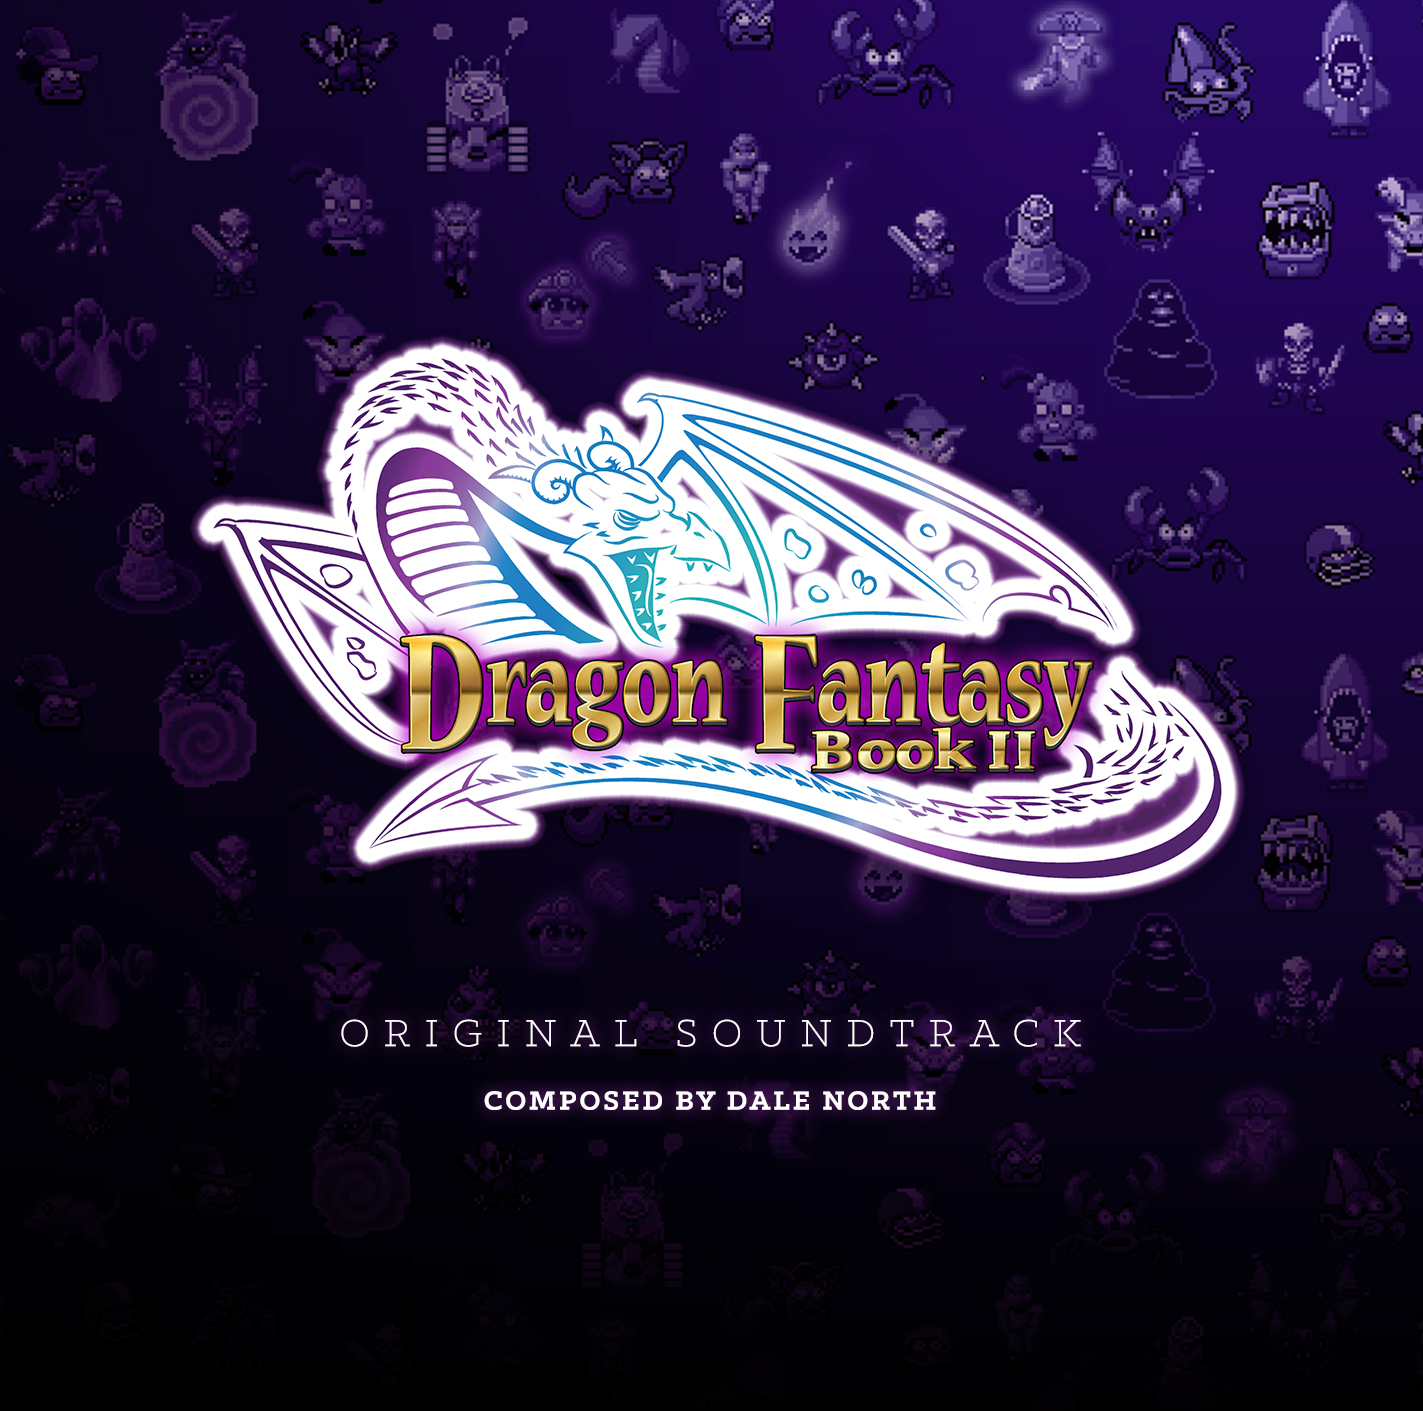 Dragon Fantasy Book II Original Soundtrack